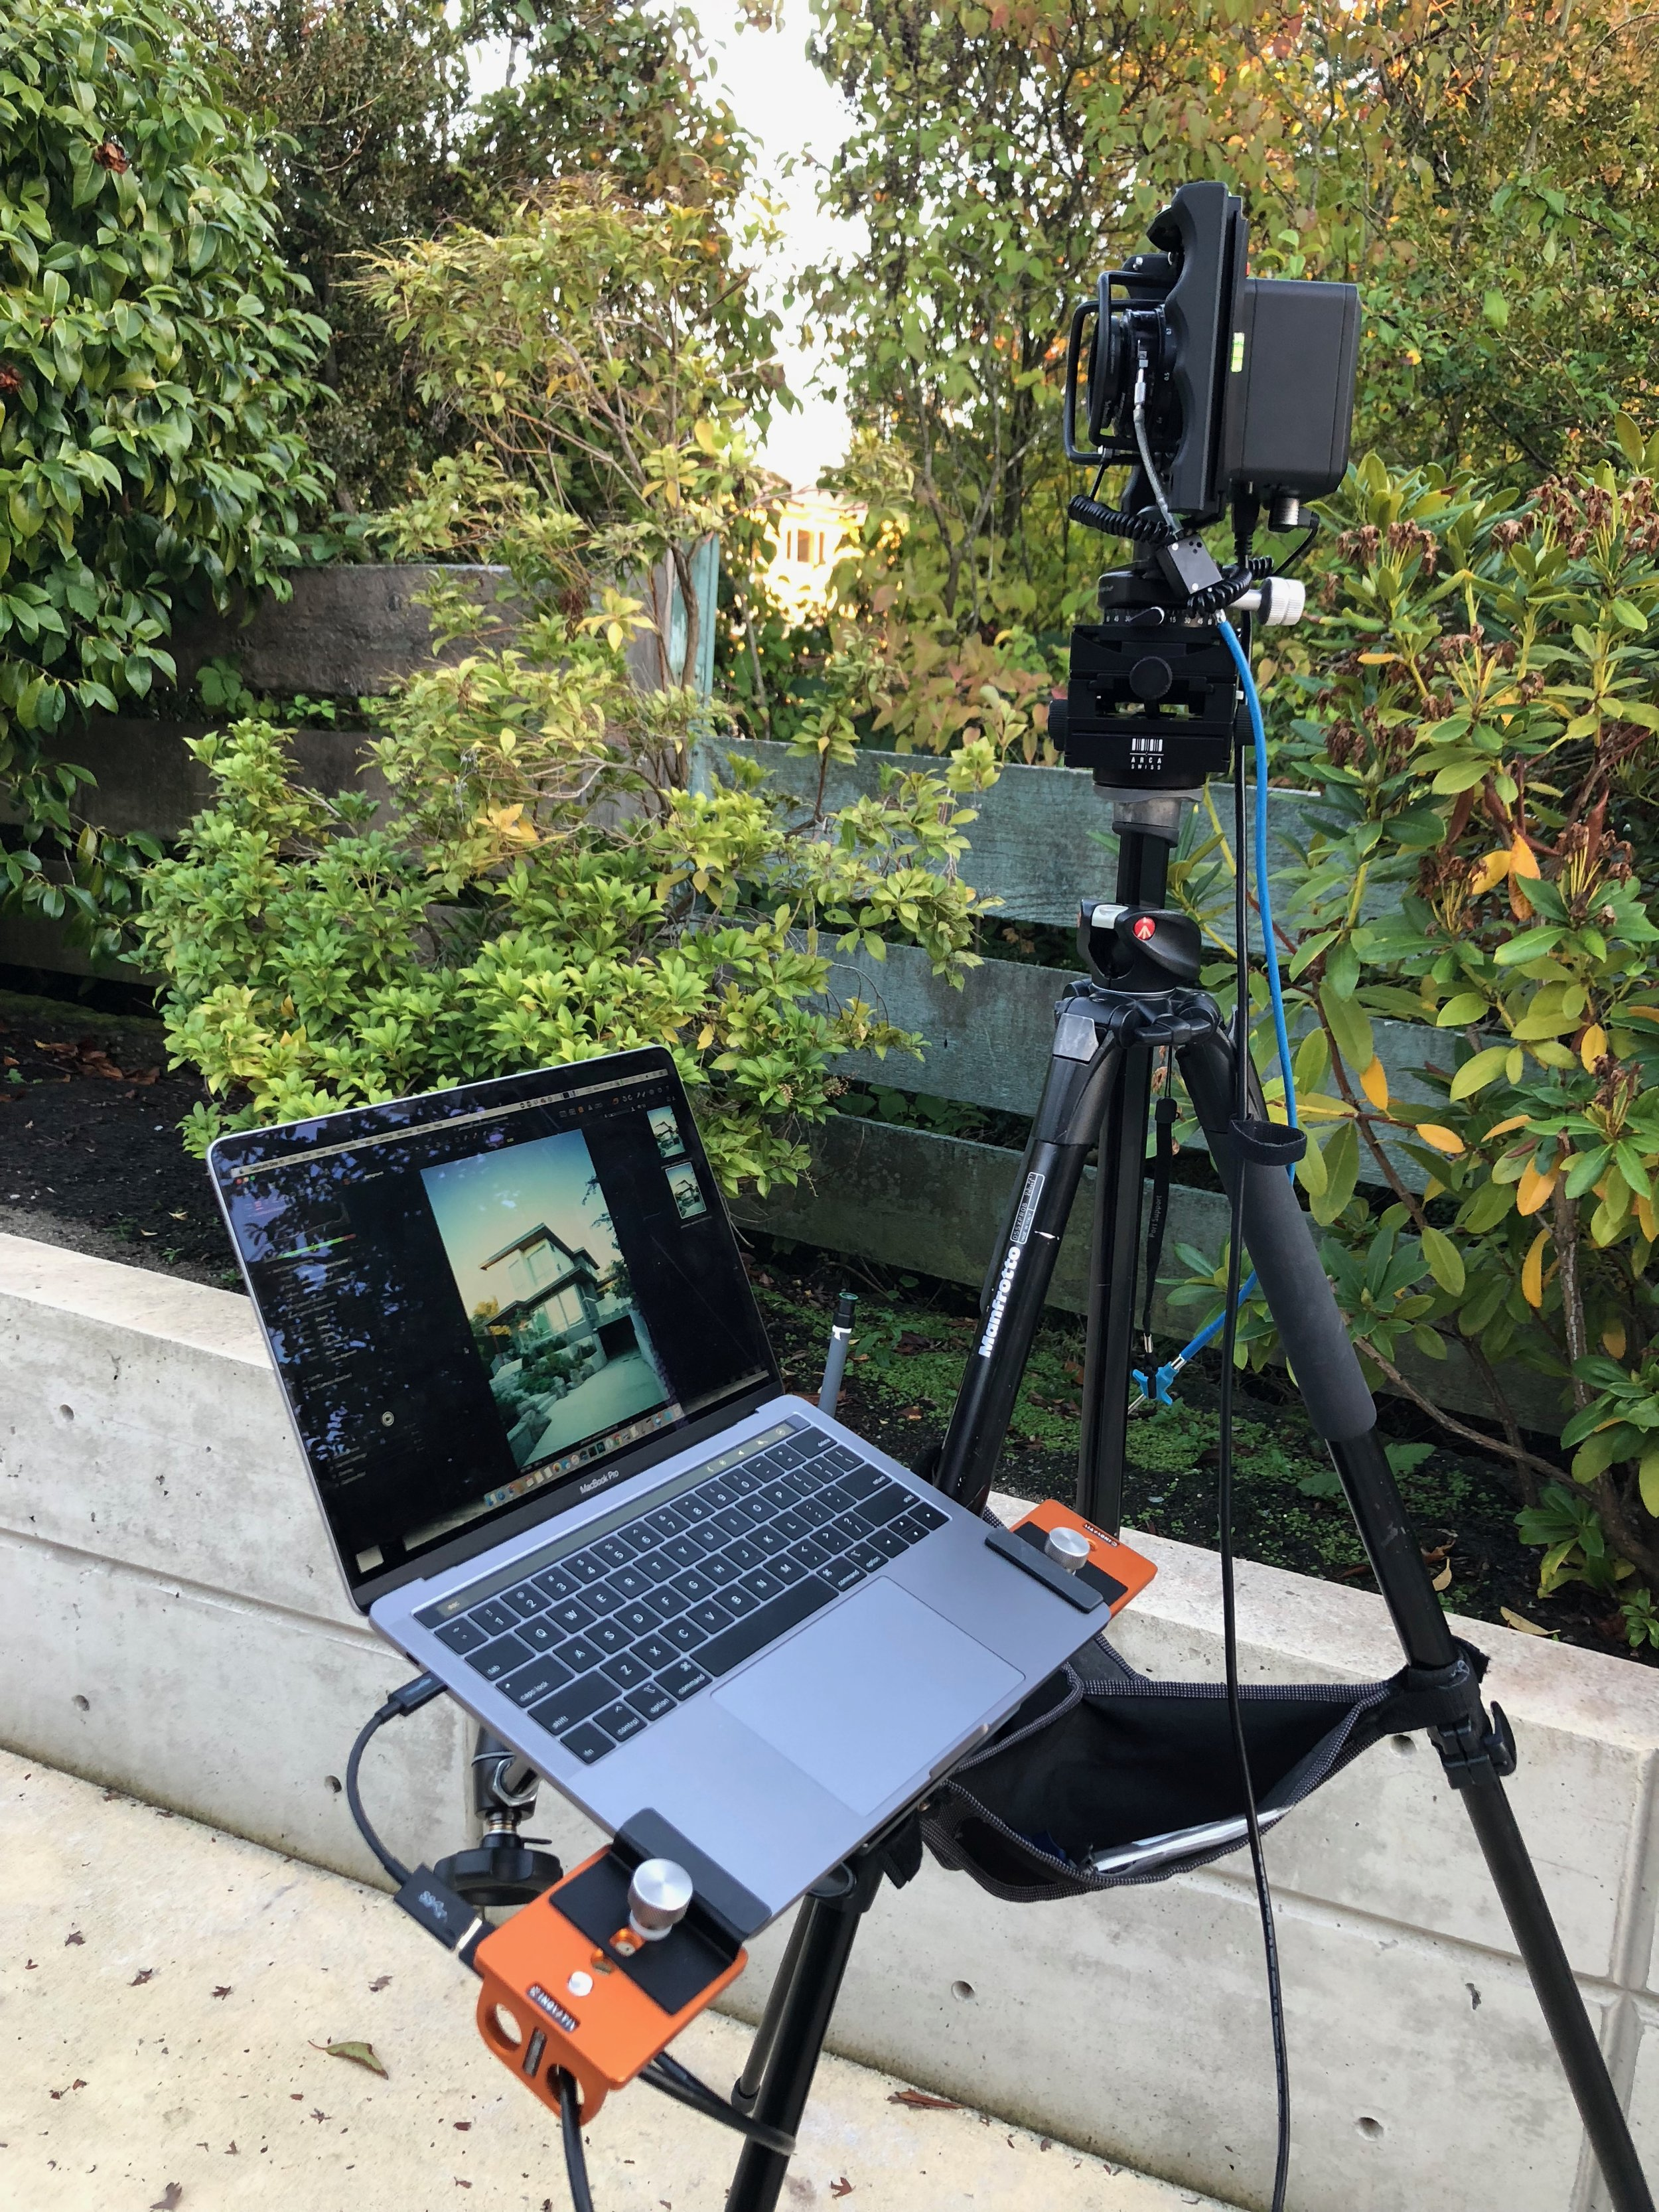 Inovativ DigiPlate rig in use